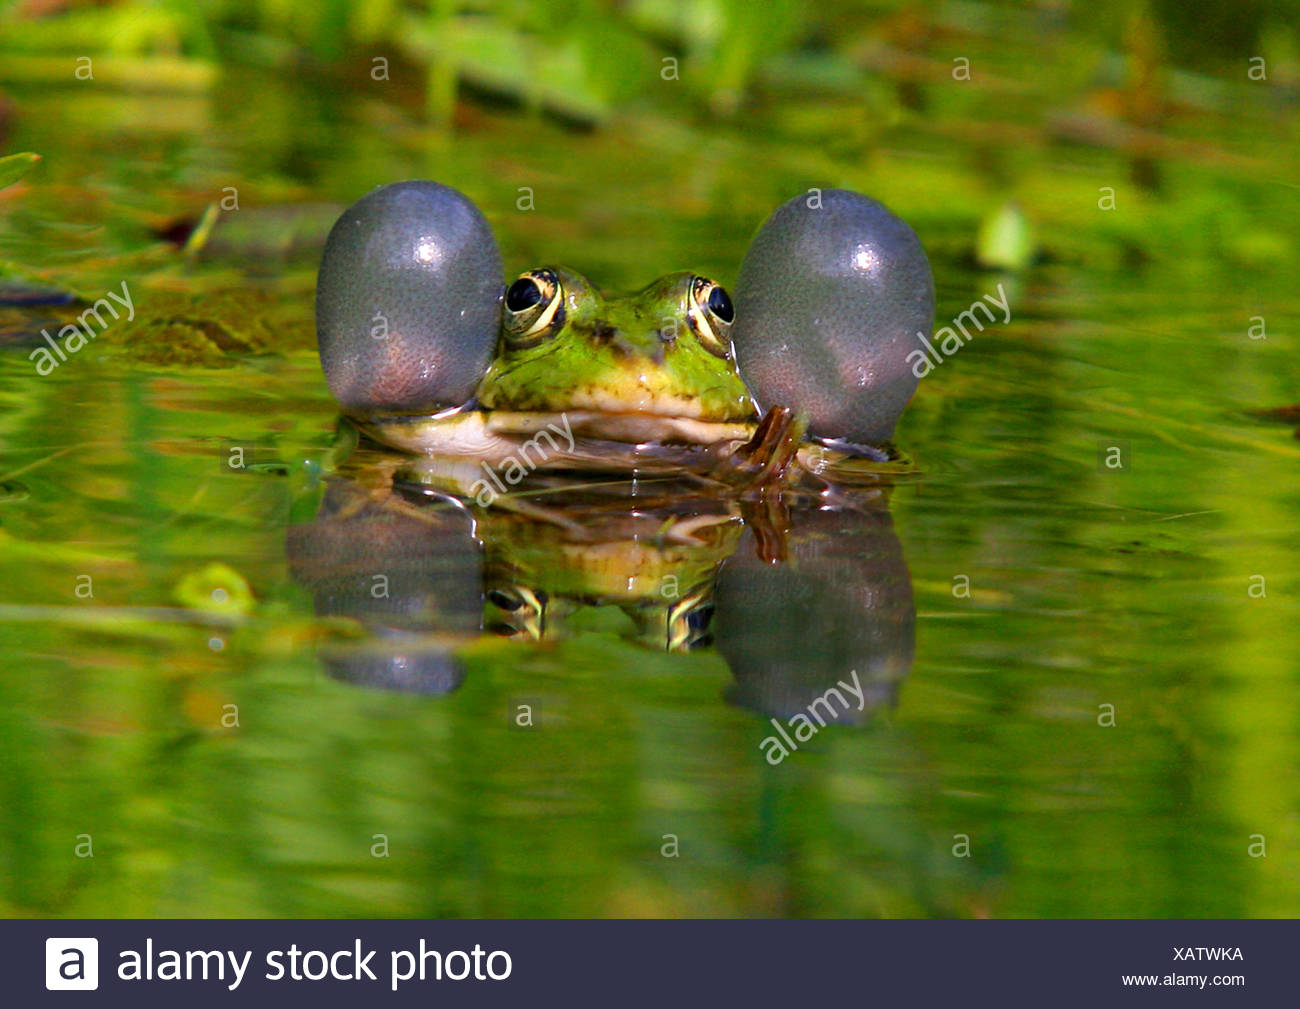 European edible frog, common edible frog (Rana kl. esculenta, Rana esculenta, Pelophylax esculentus), with vocal sacs and mirror image, Germany - Stock Image